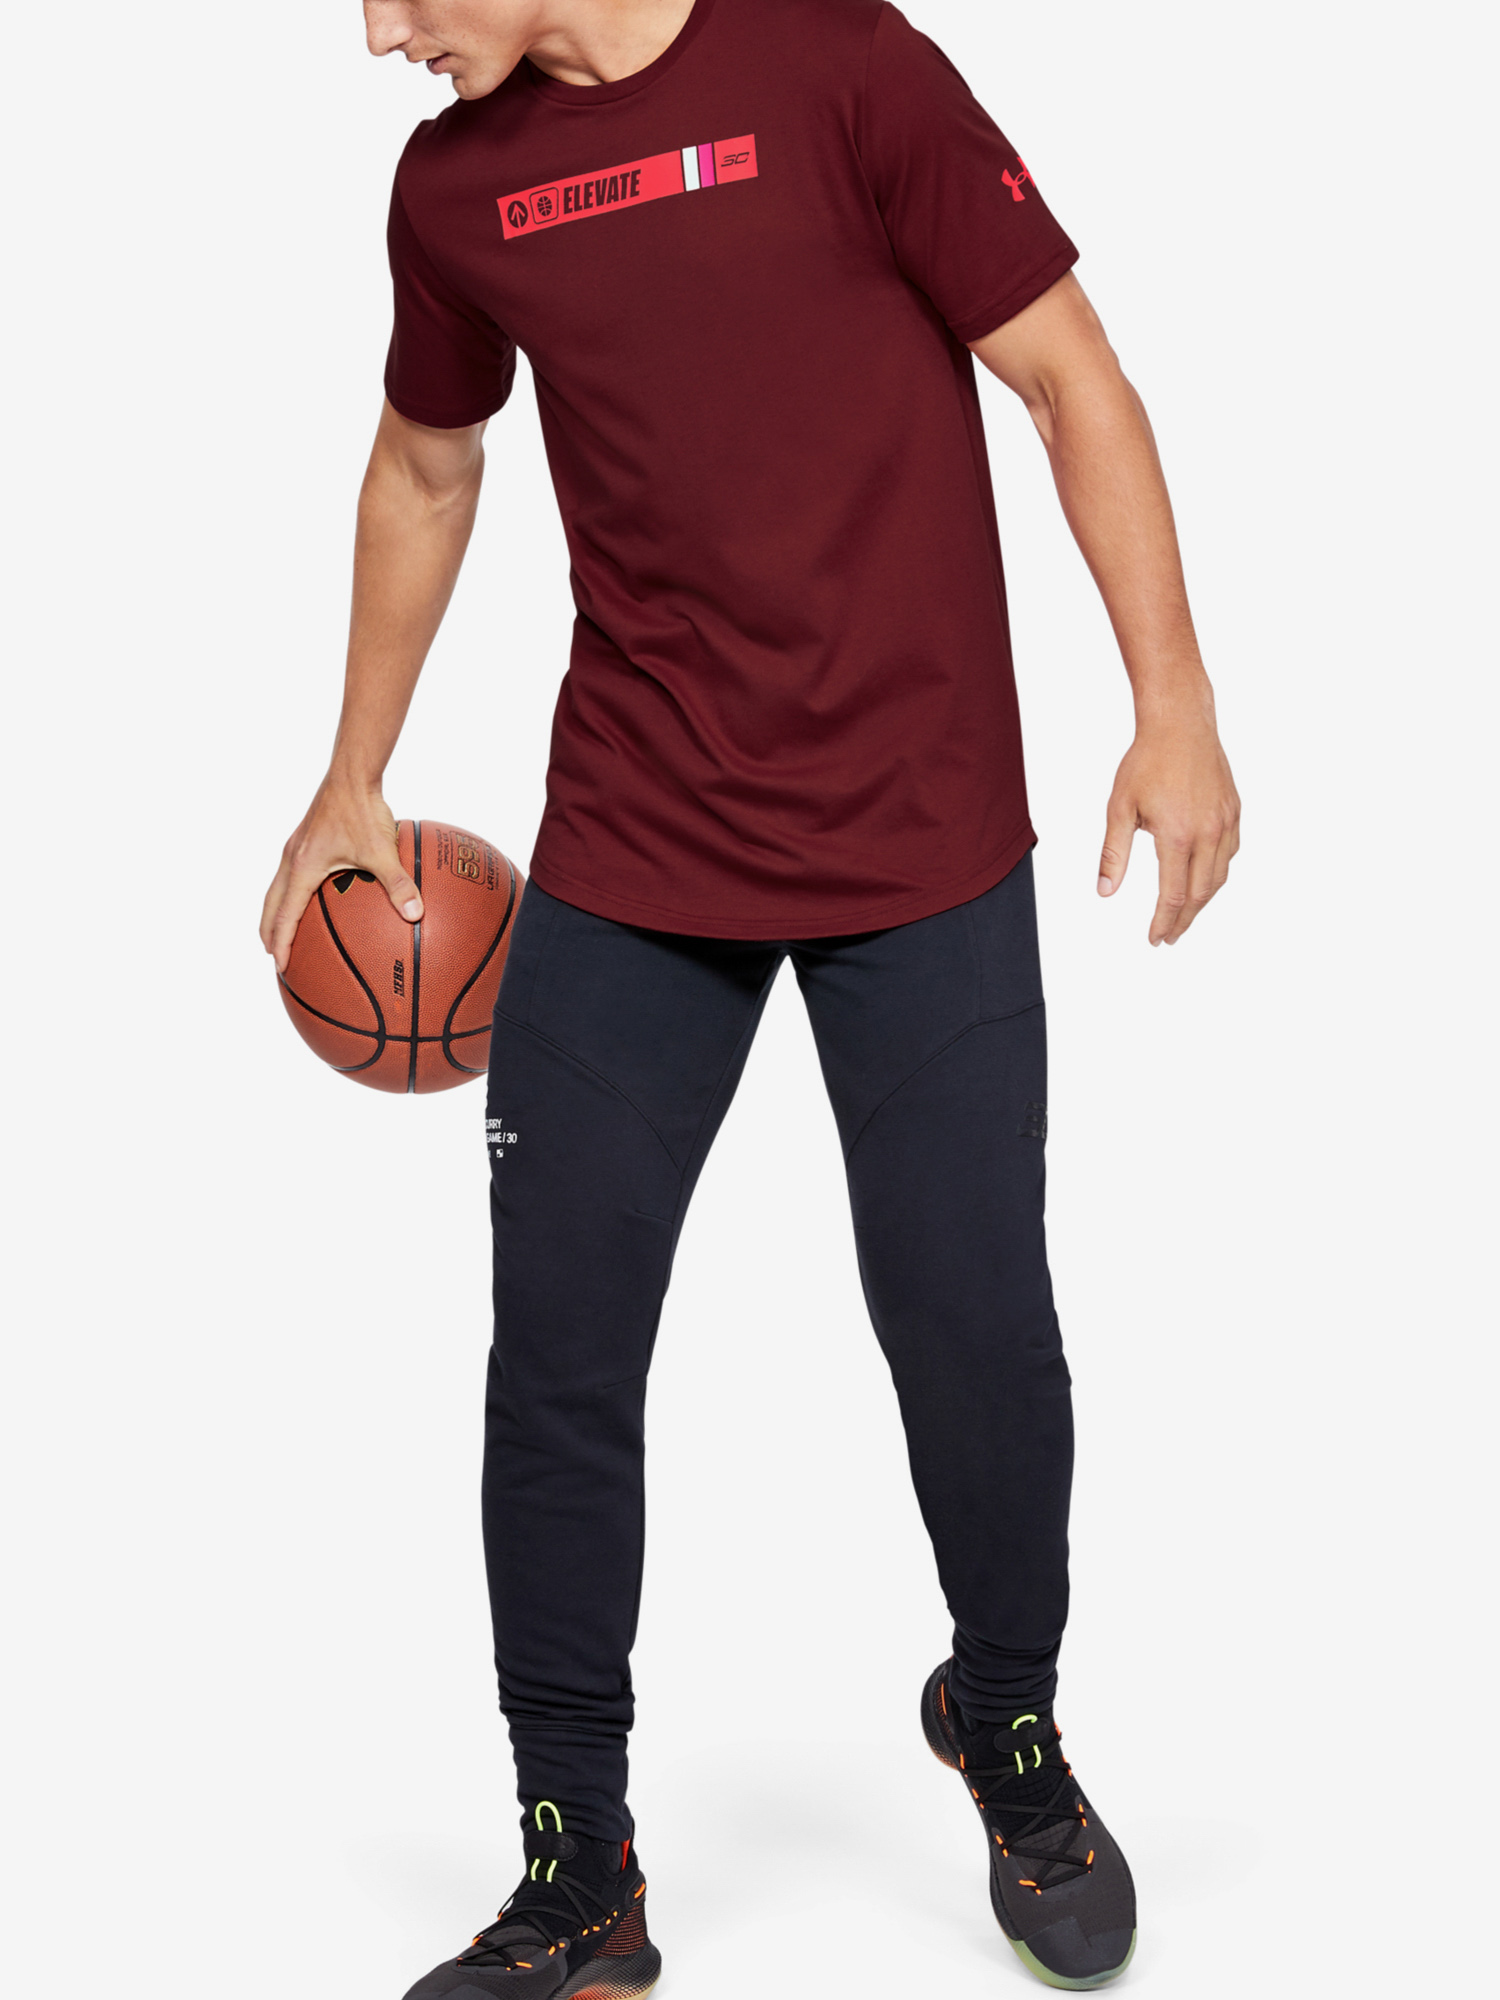 Tričko Under Armour Sc30 Ss Elevated Tee (6)